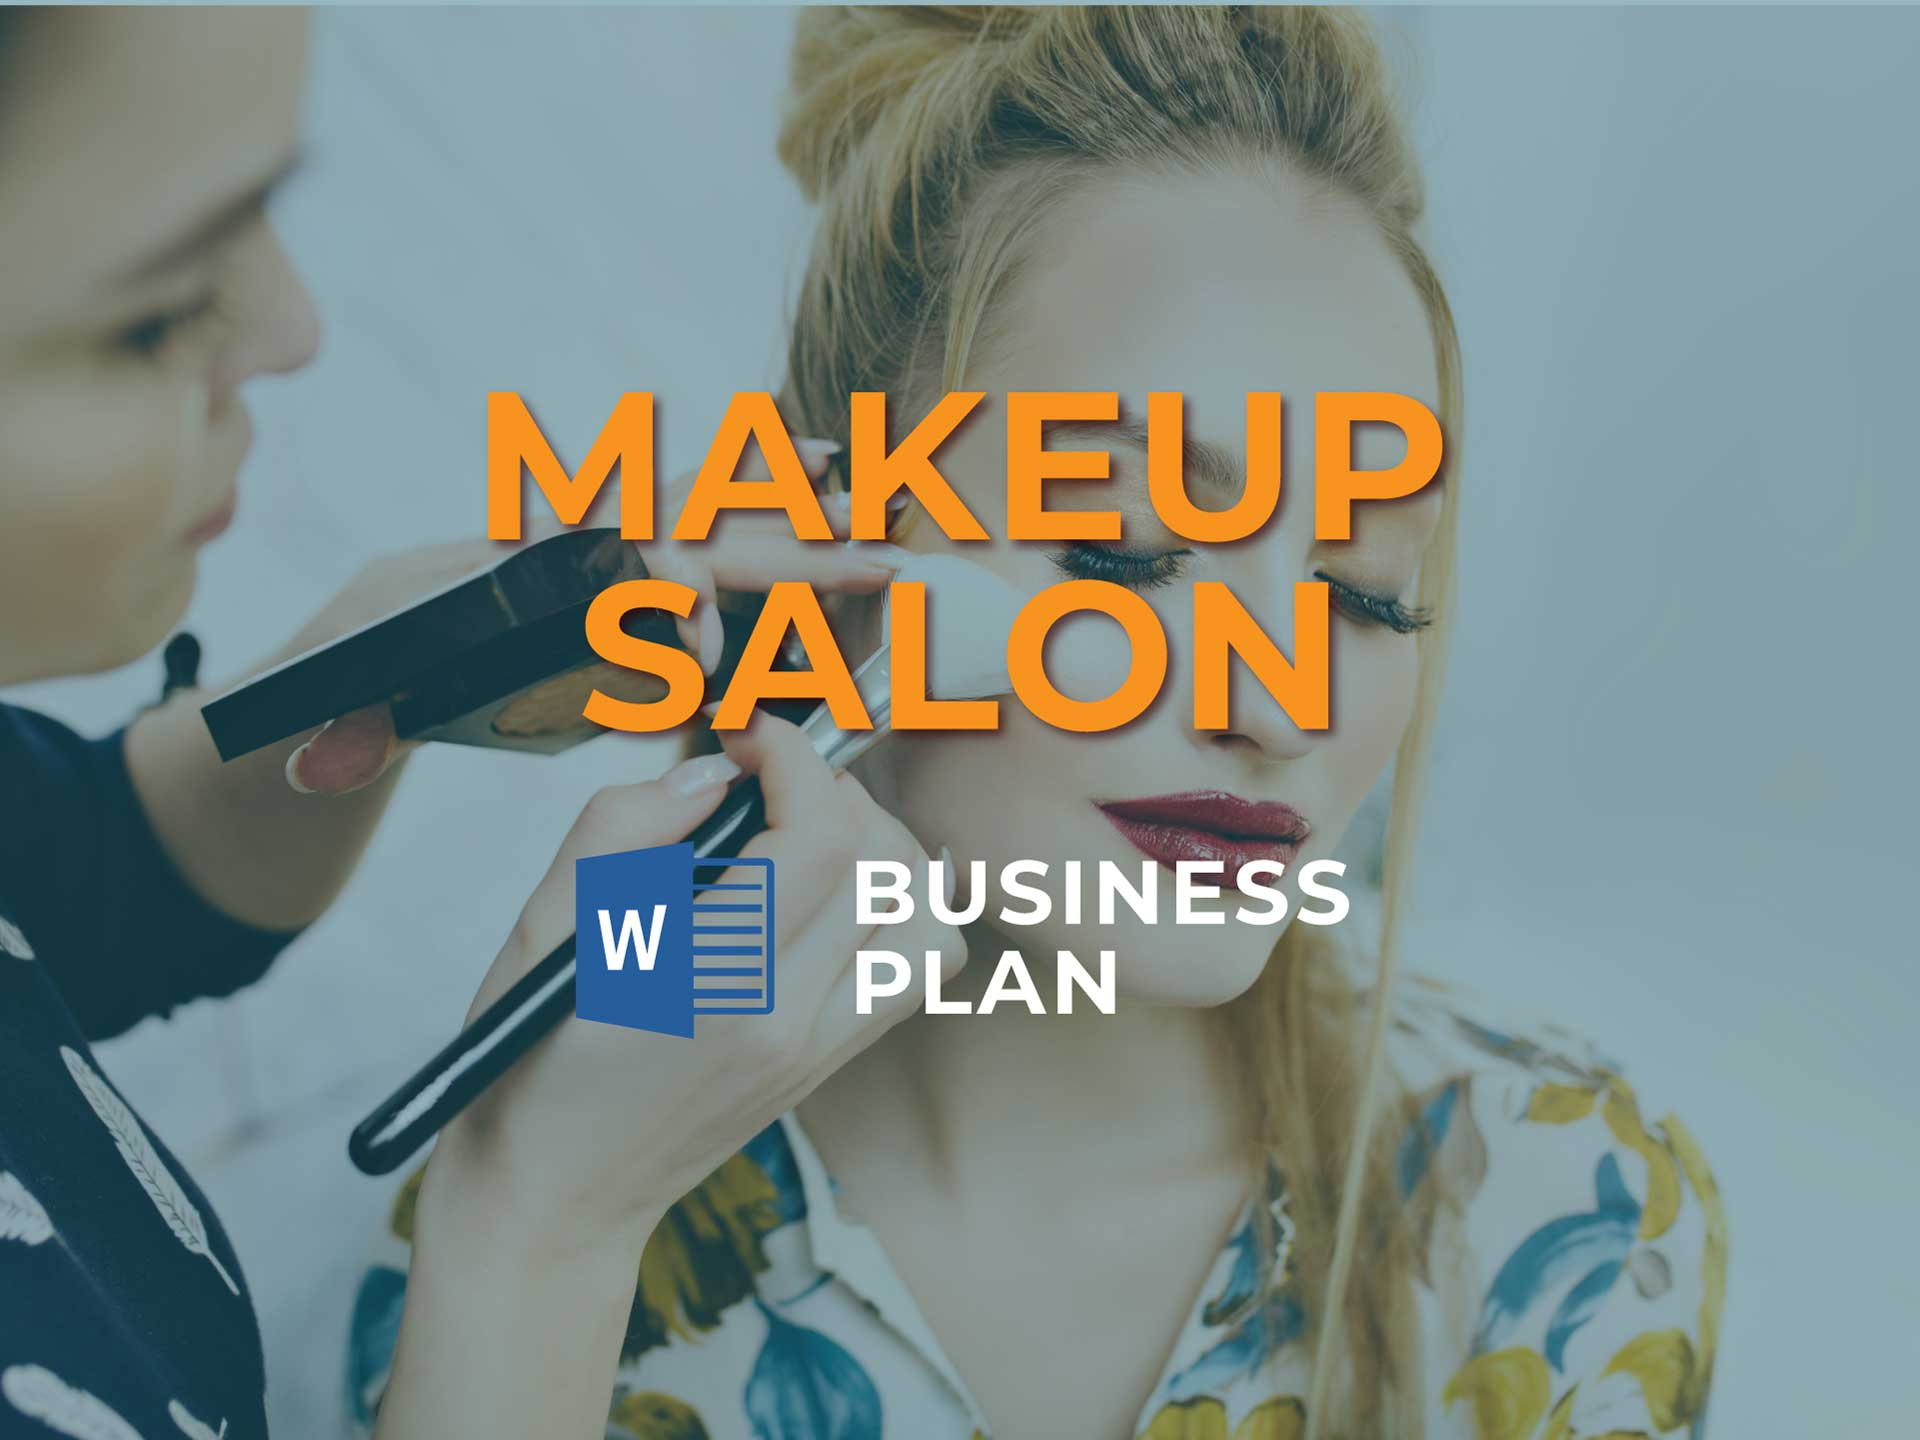 Makeup Salon